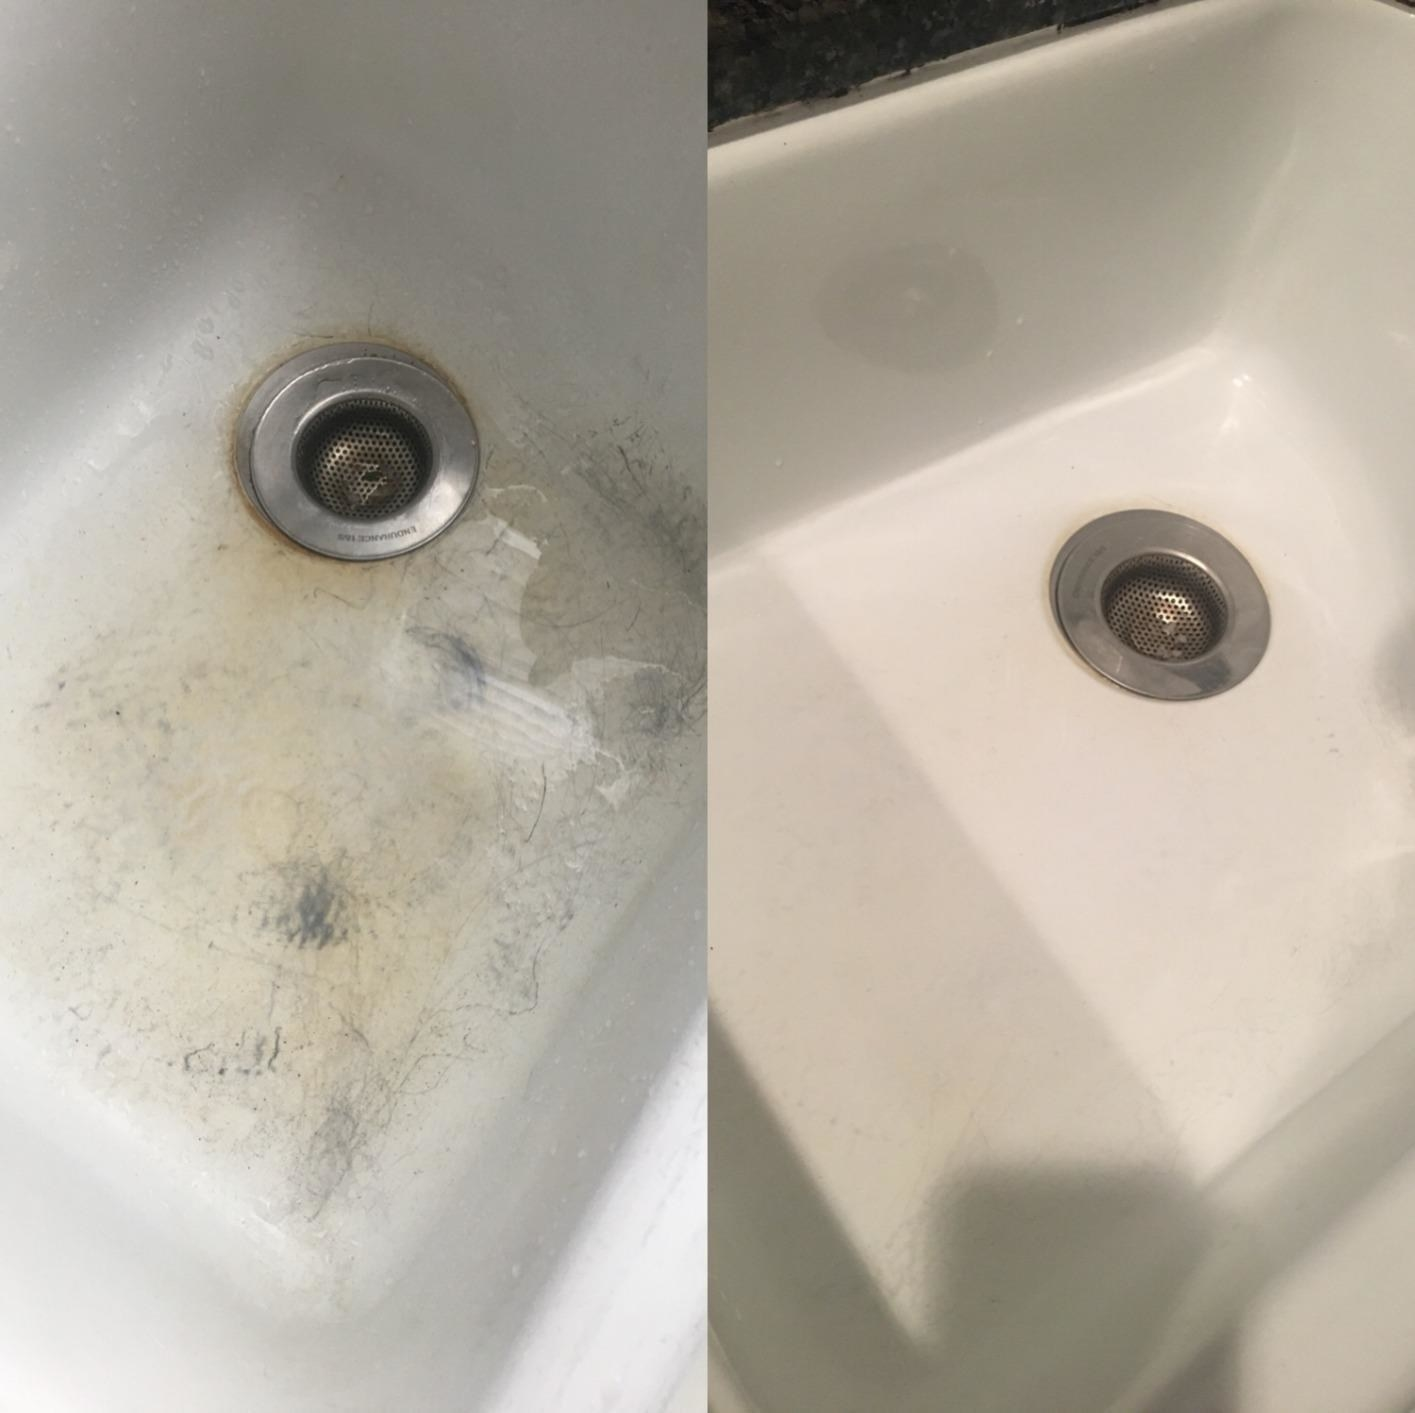 A reviewer's sink: on the left with many scuffs and scratches and on the right, almost brand-new clean